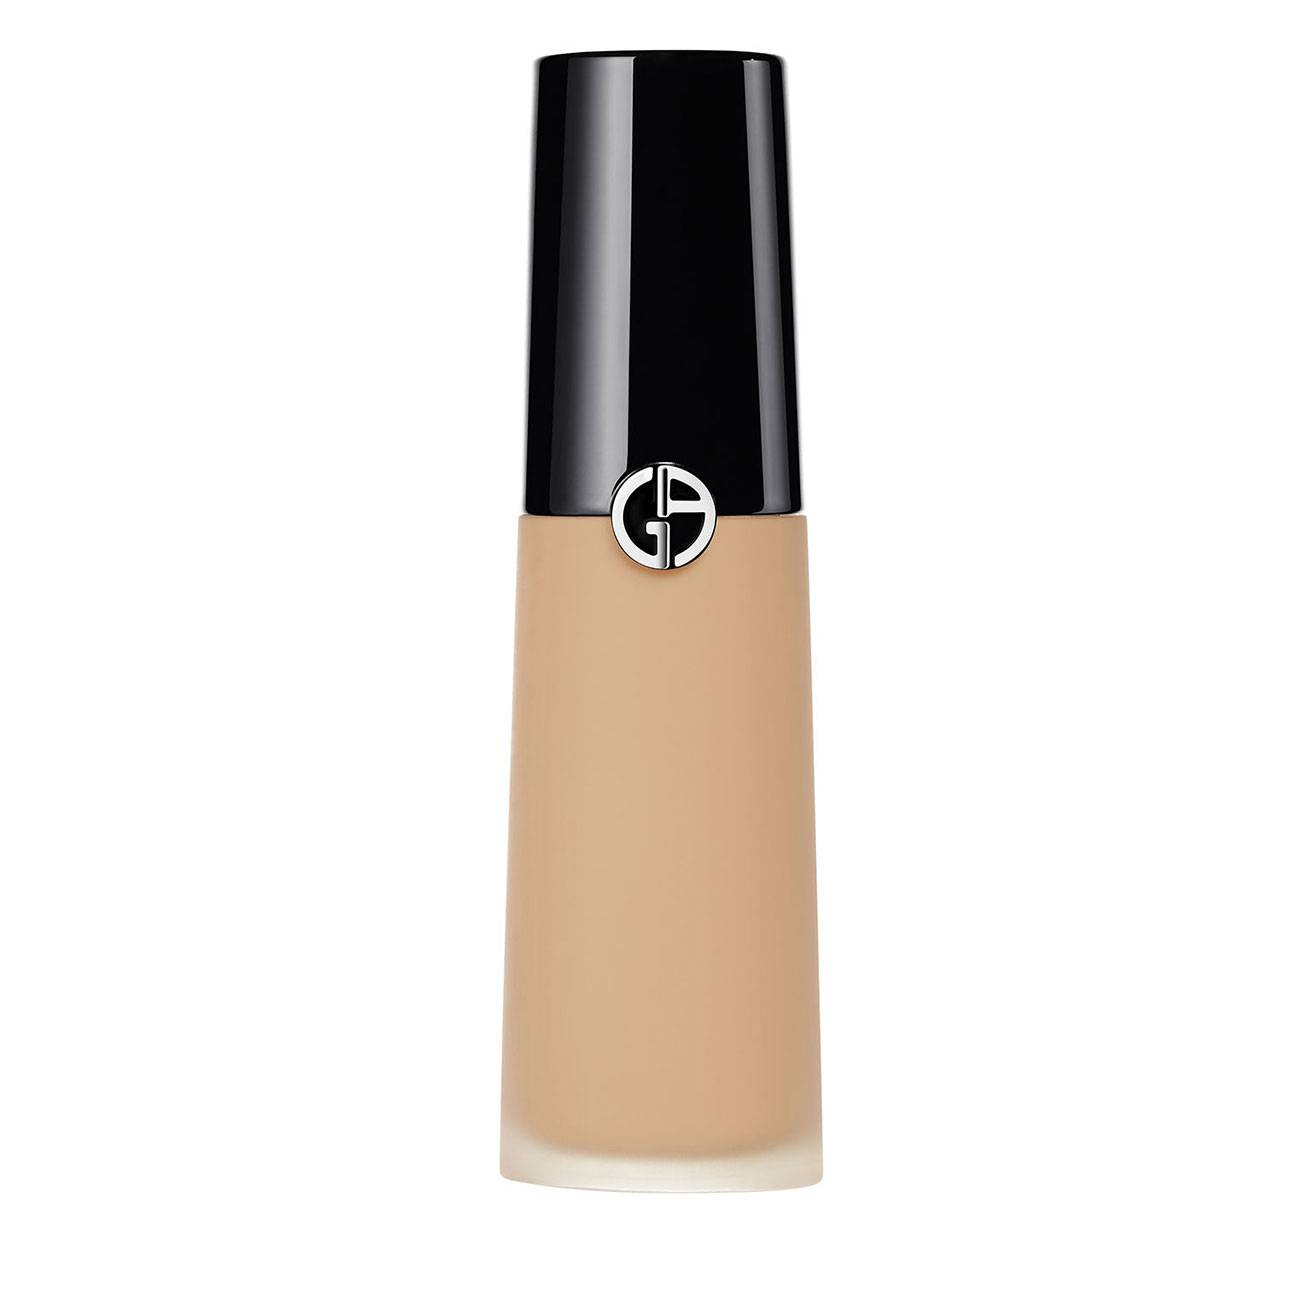 Luminous Silk Concealer 4 12ml Giorgio Armani imagine 2021 bestvalue.eu